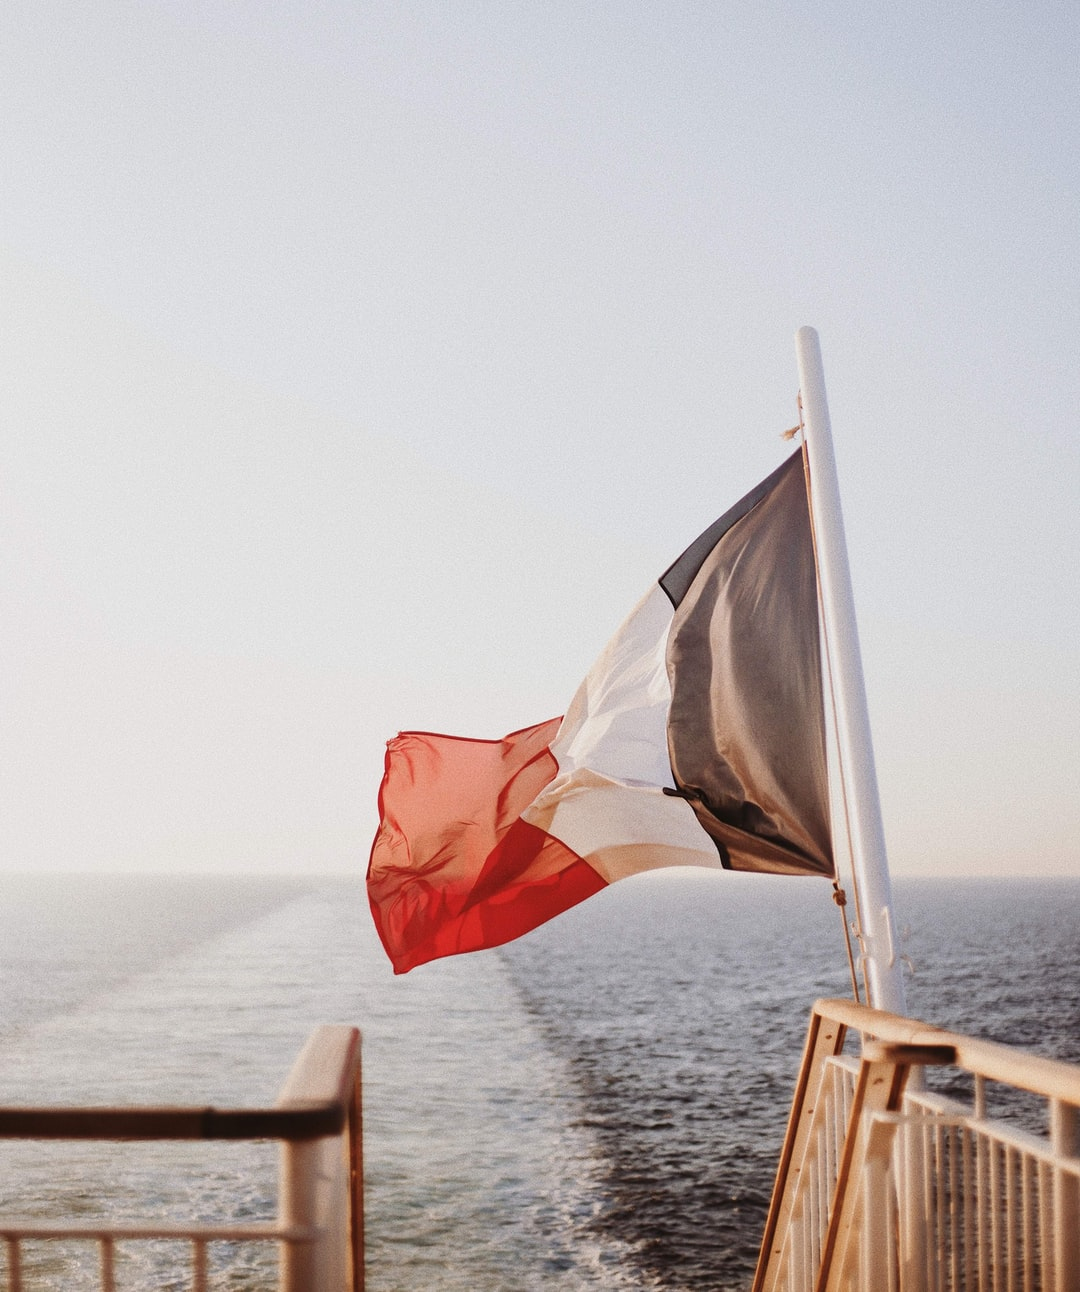 French Flag flying in the wind.